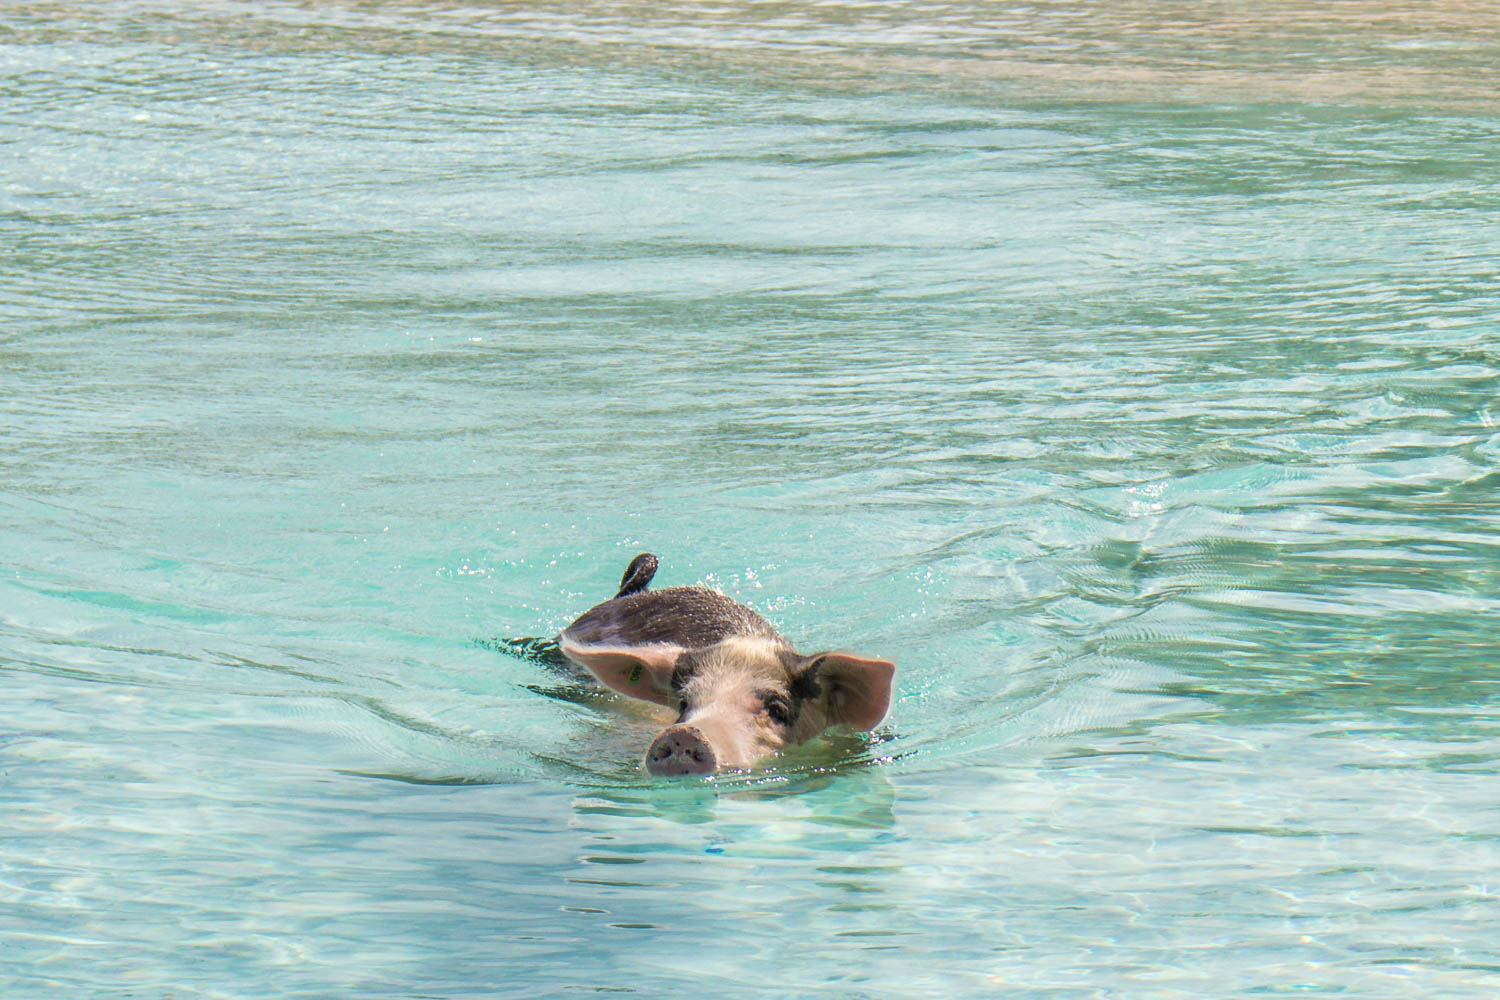 You can take a Pig Beach Bahamas tour from Nassau. The trip to Pig Beach Exuma takes only half an hour on a Nassau to Pig Beach Bahamas tour.